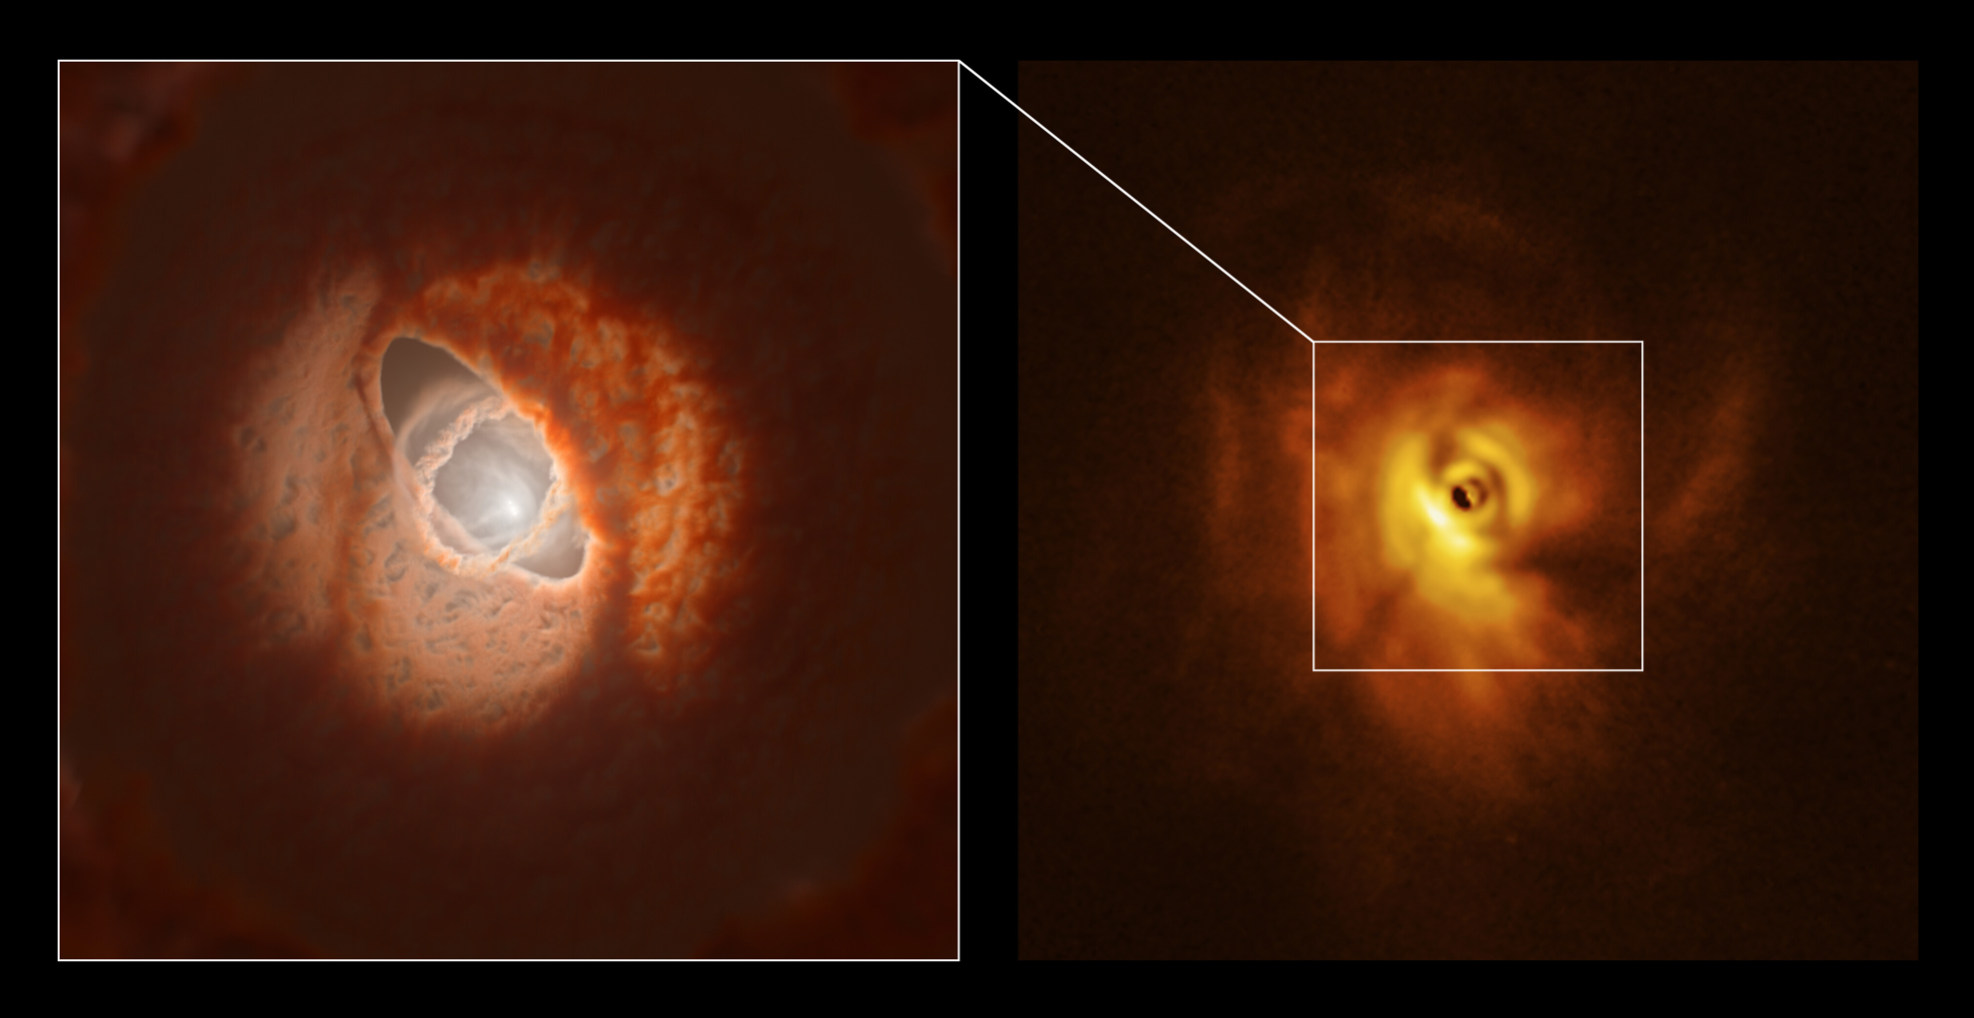 New observations of GW Orionis, a triple star system with a peculiar inner region, revealed that this object has a warped planet-forming disk with a misaligned ring.